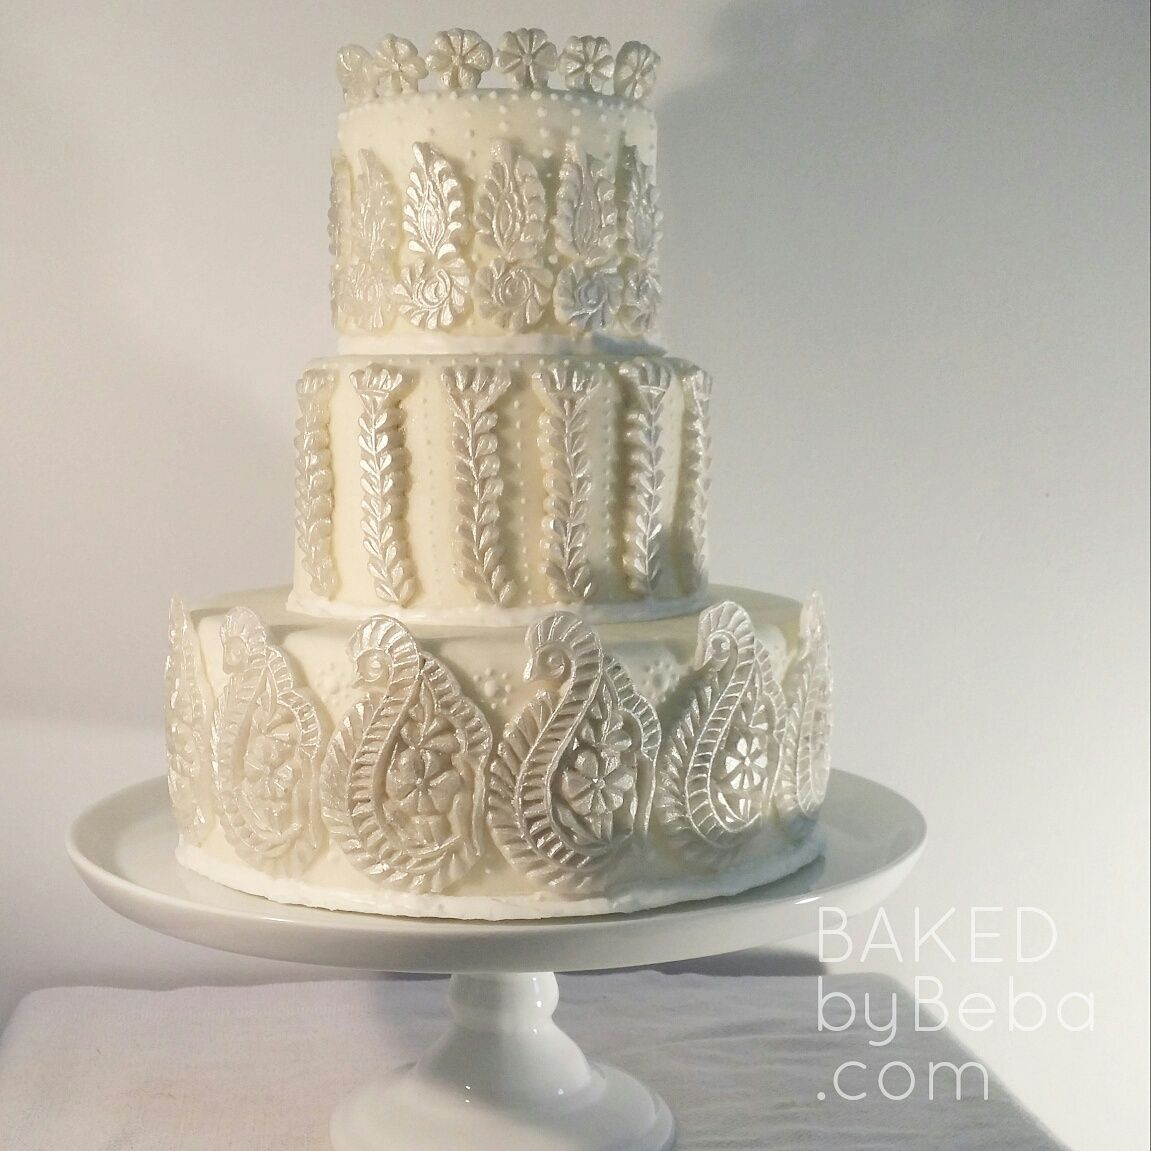 RUBYS WEDDING CAKE She Walks In Beauty Butter Vanilla Wedding Cake With A Delectable White